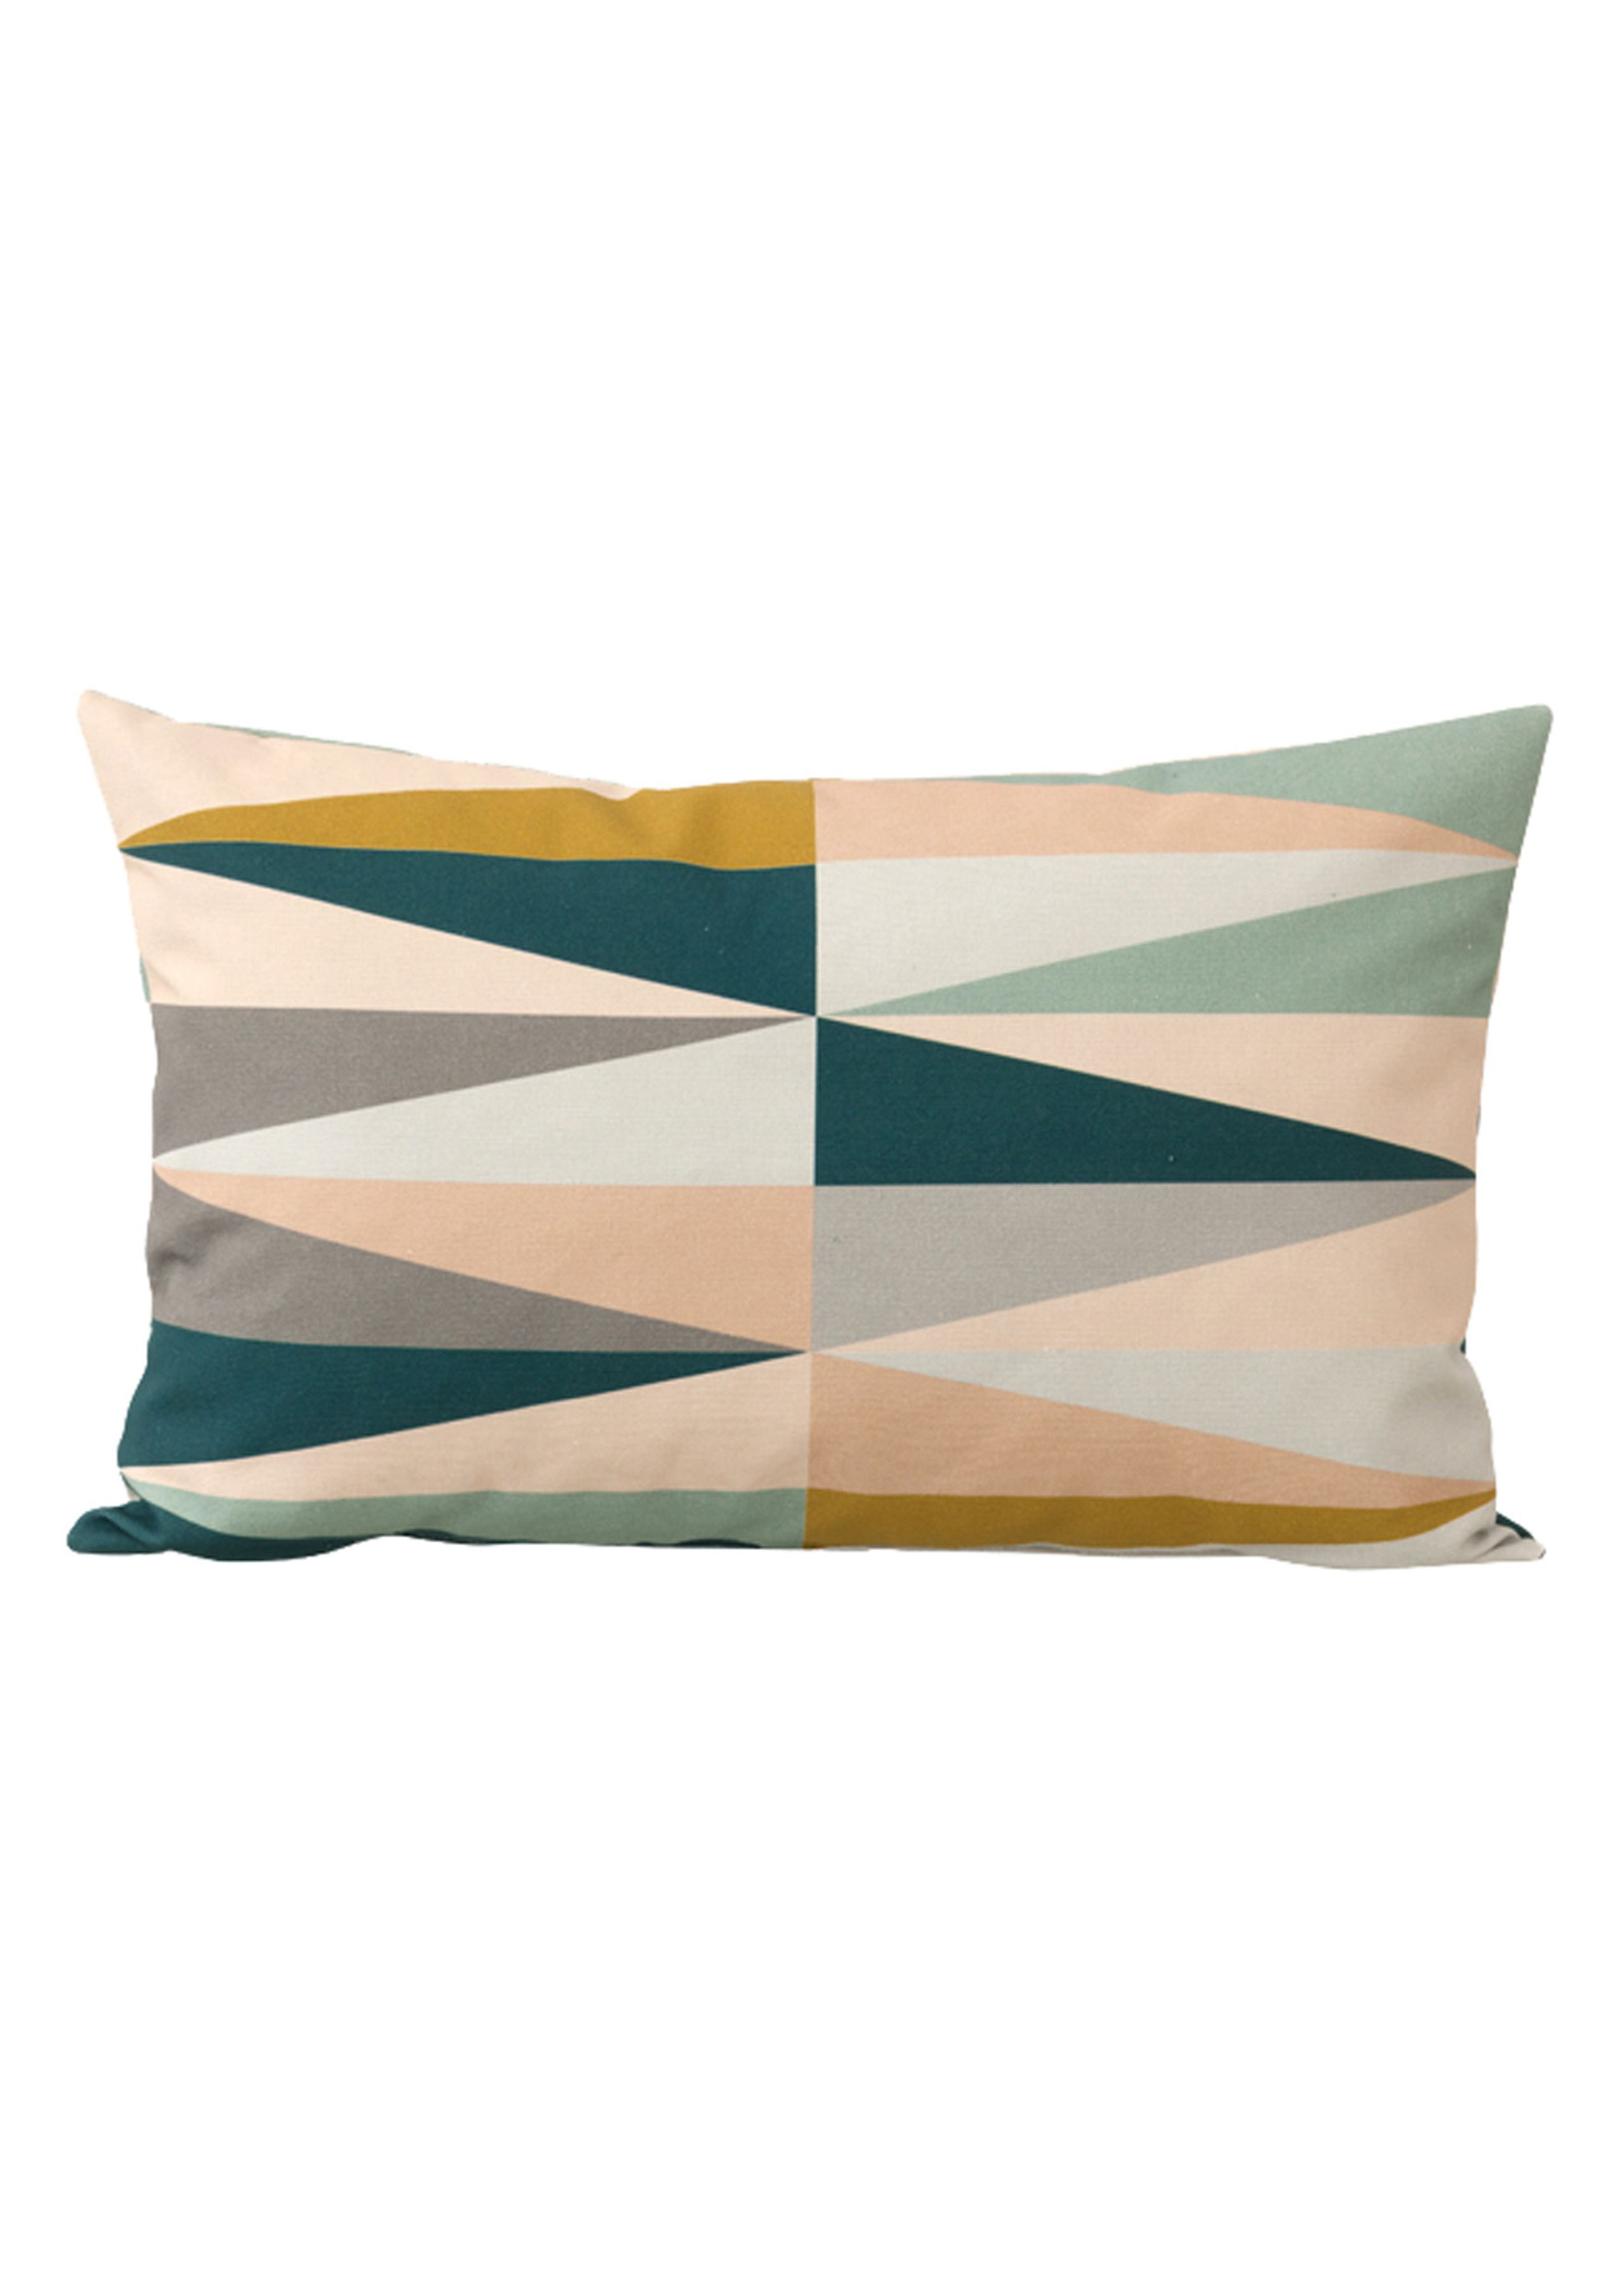 Image of   Spear Cushion Small